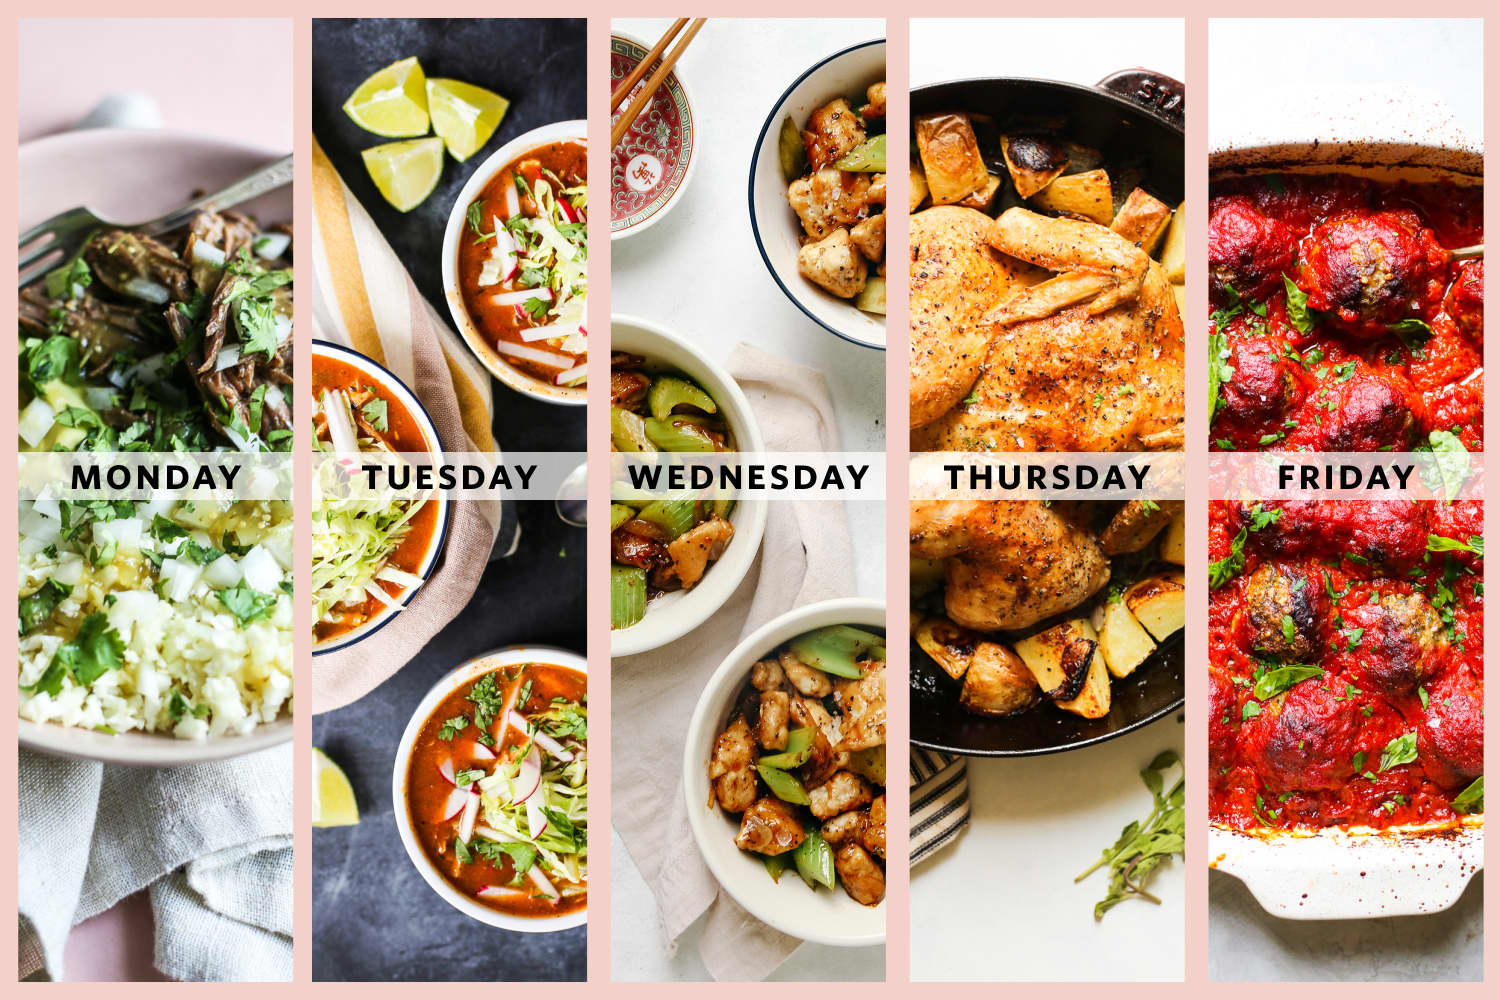 A Week of Family-Friendly Whole30 Dinners from The Defined Dish